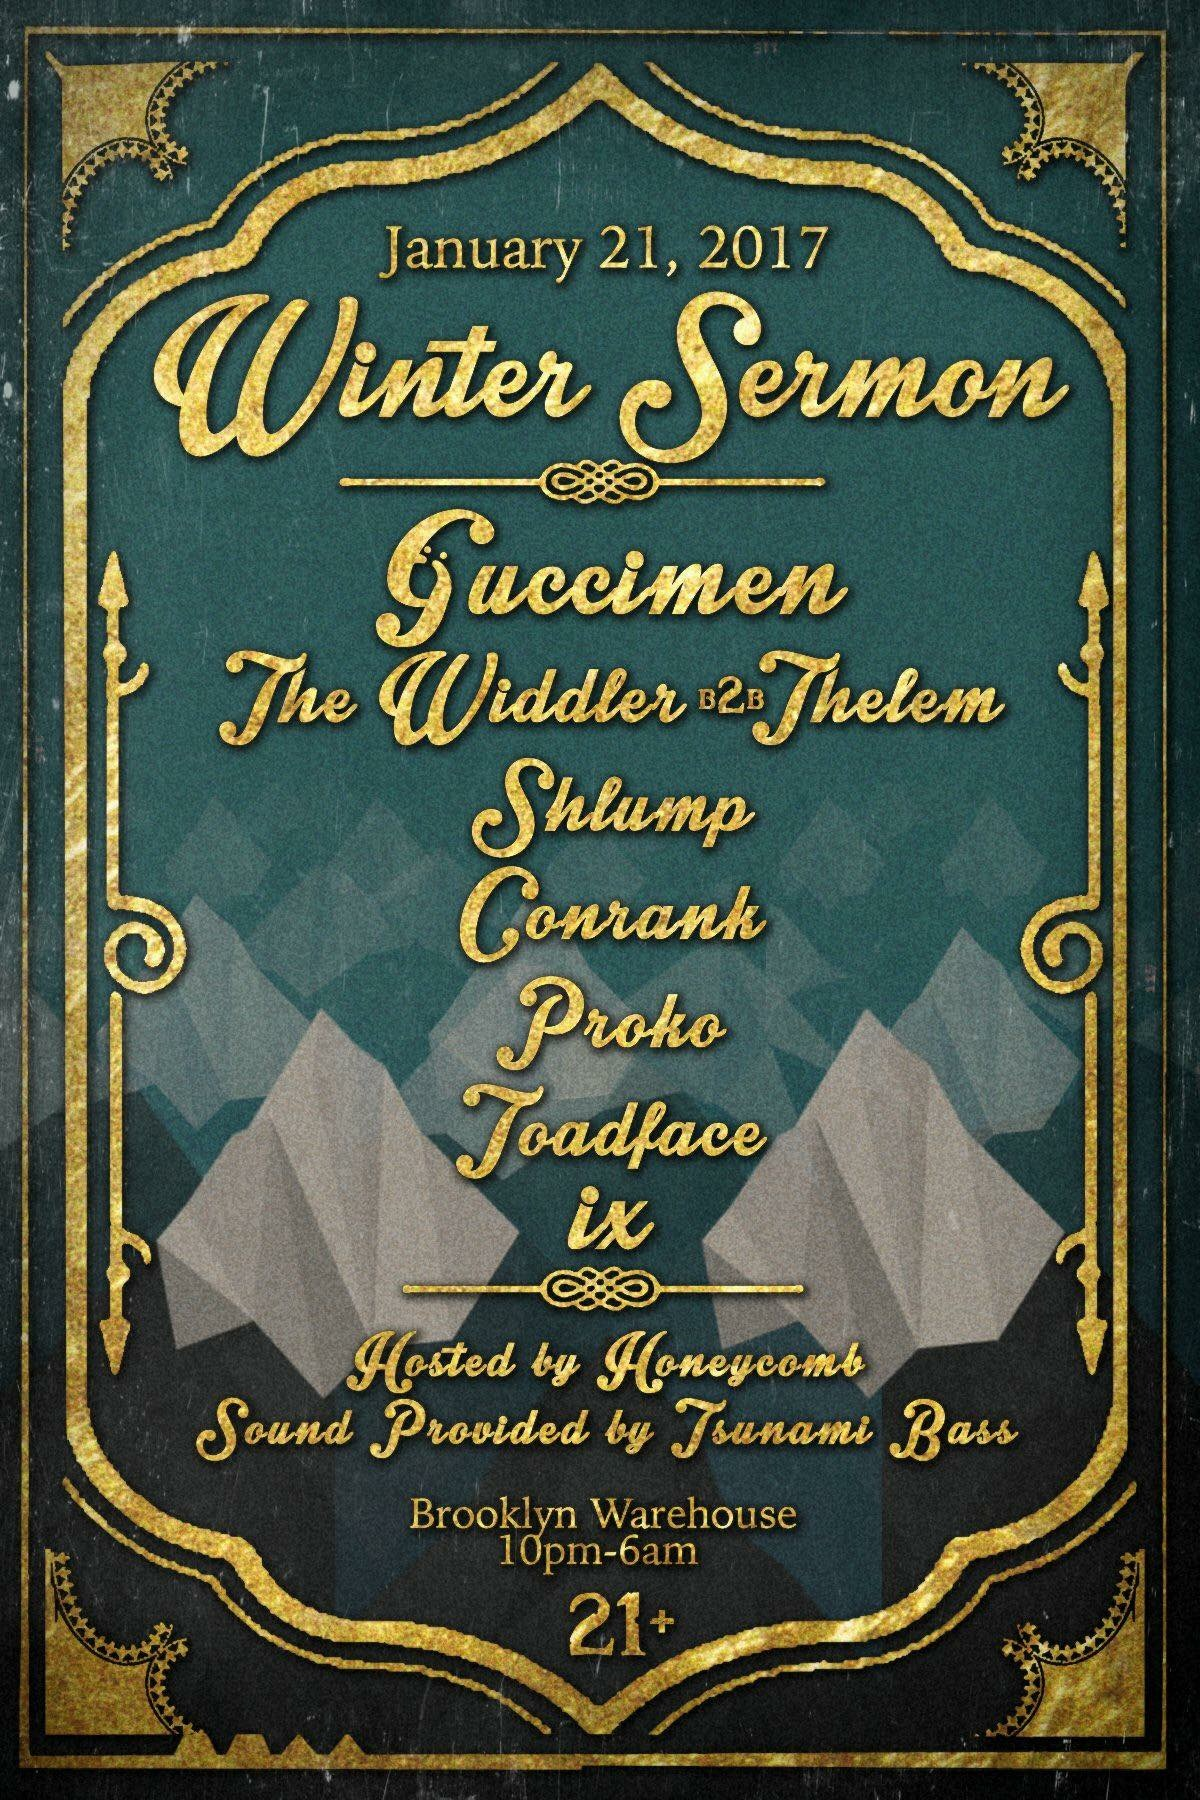 Winter Sermon